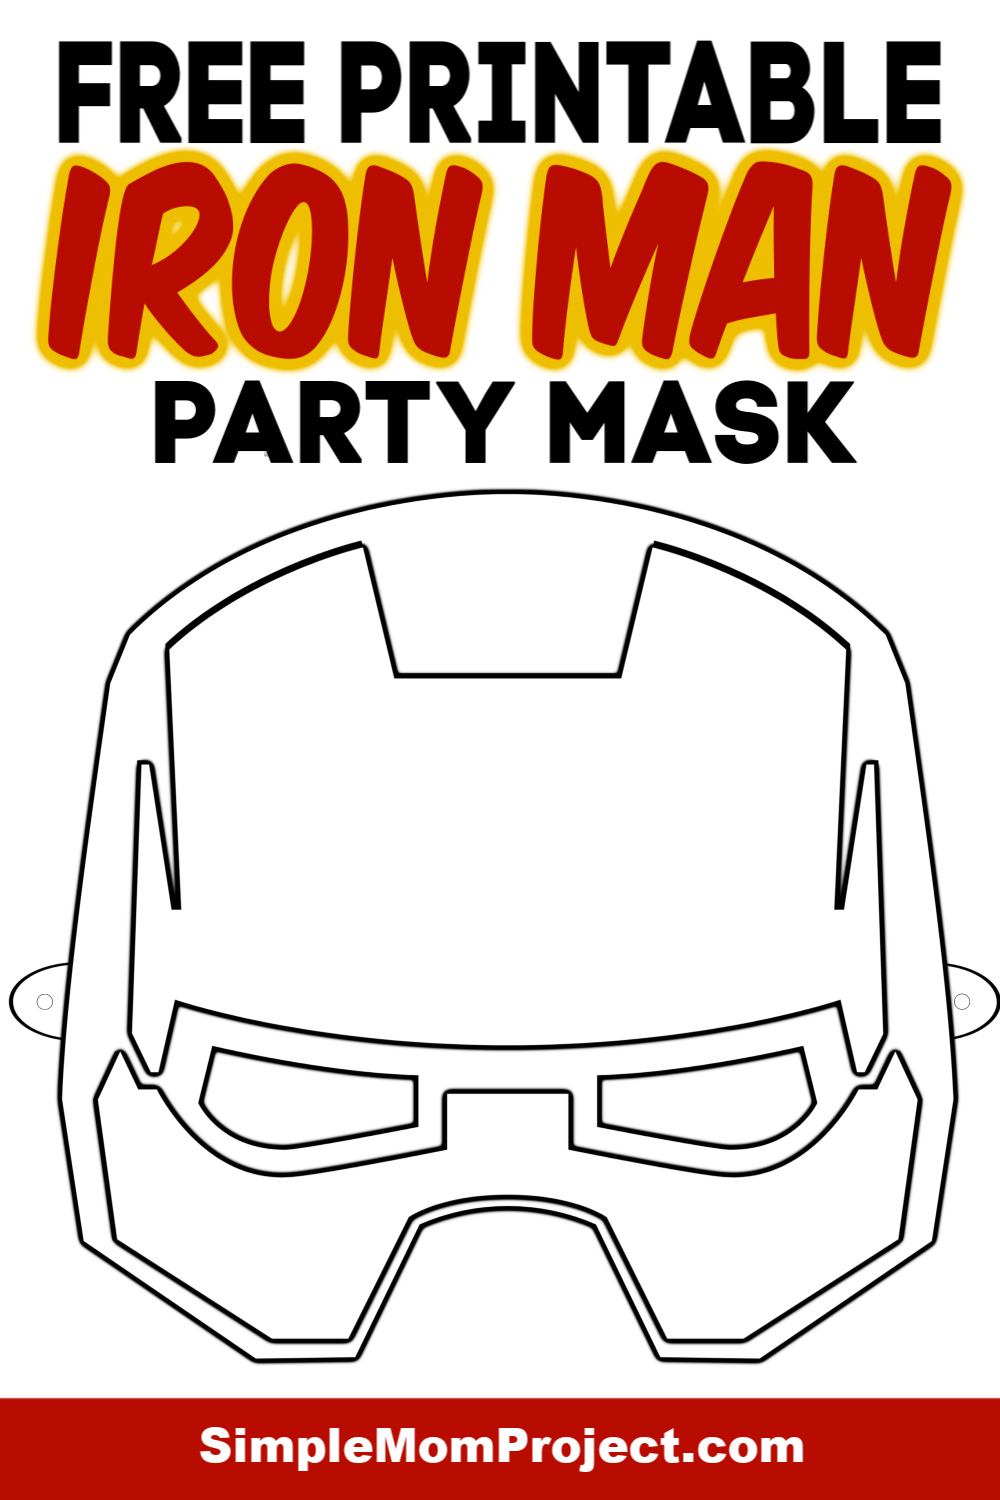 Free Printable Superhero Face Masks For Kids Simple Mom Project In 2020 Mask For Kids Face Masks For Kids Mask Template